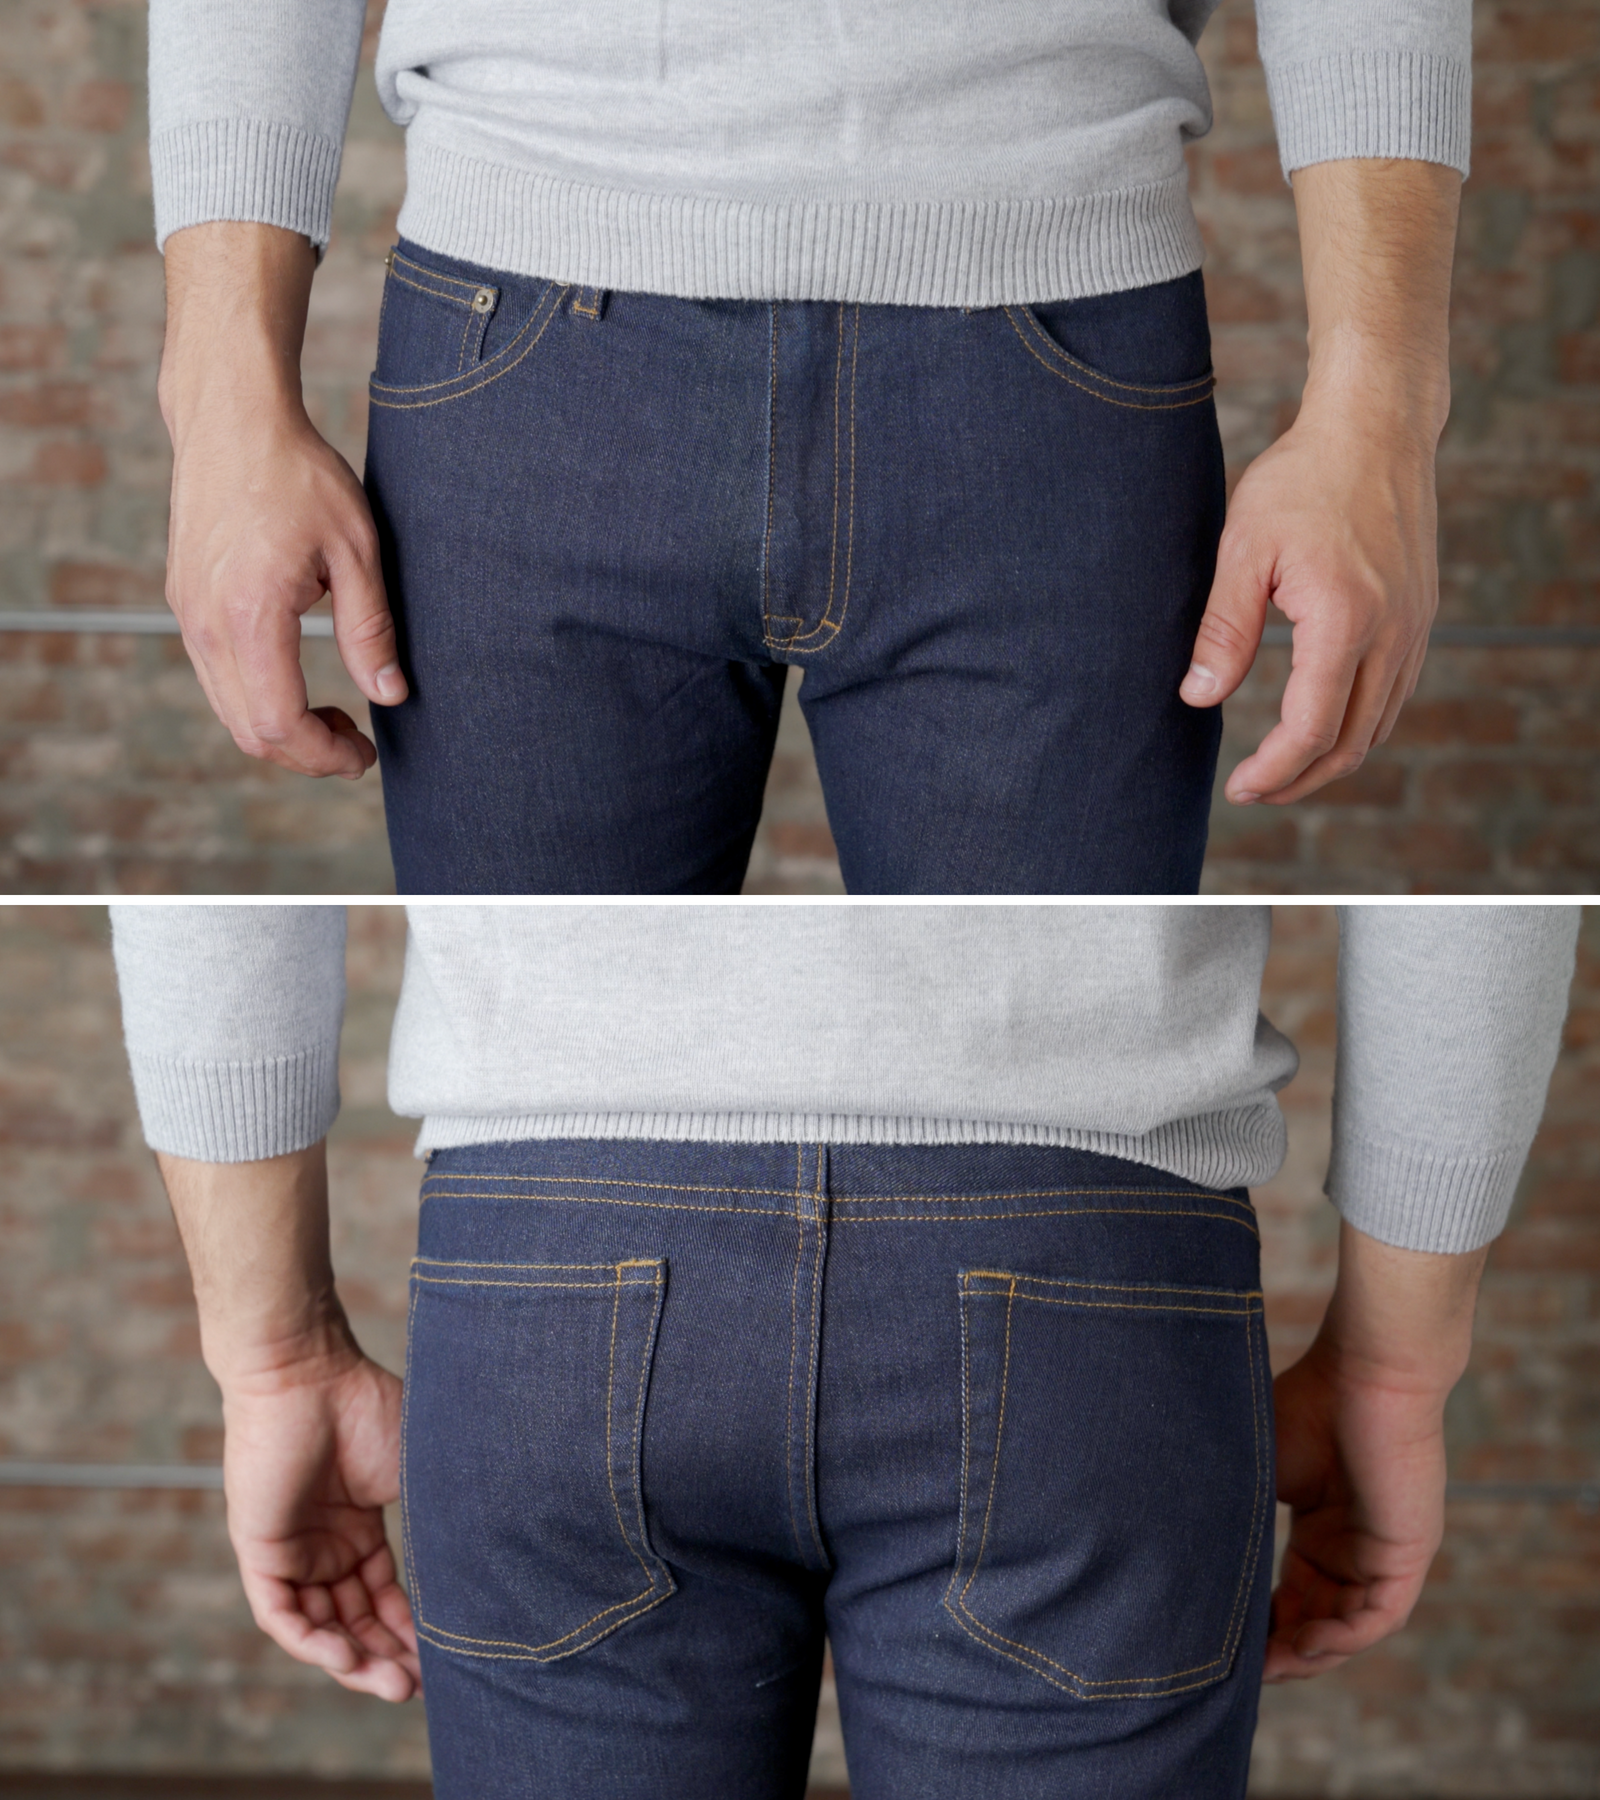 ca3370be658 Jeans for Shorter Men: The Ultimate Guide – Peter Manning NYC